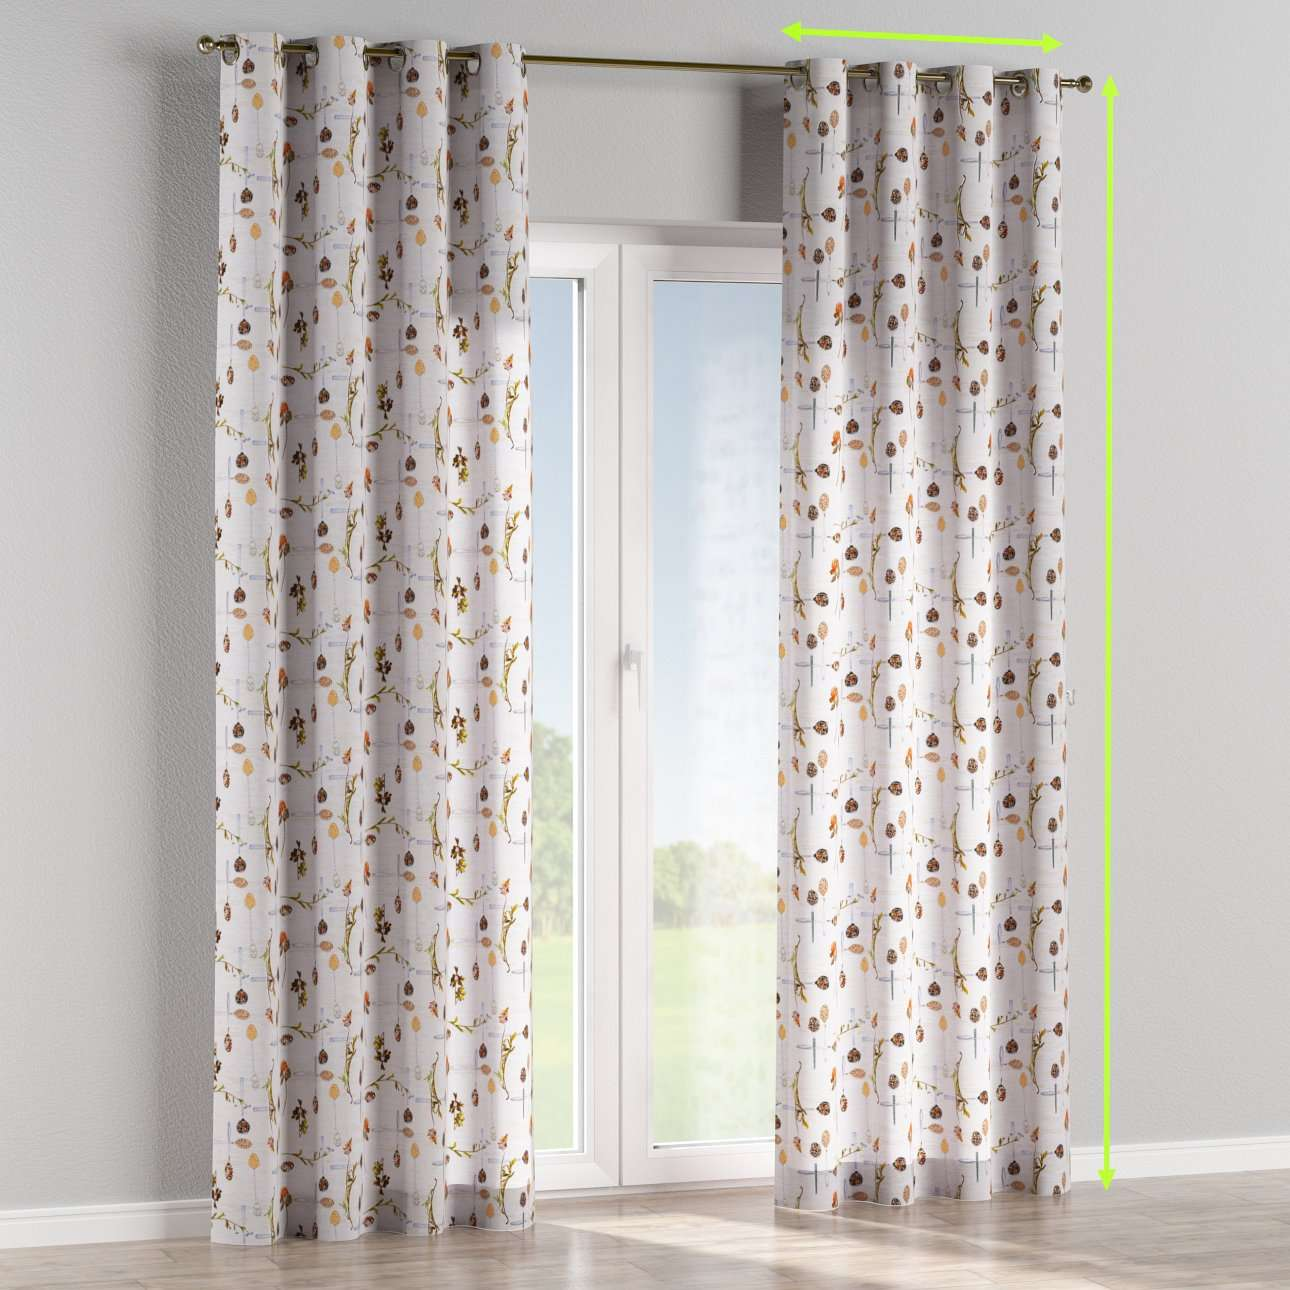 Eyelet lined curtains in collection Flowers, fabric: 140-11